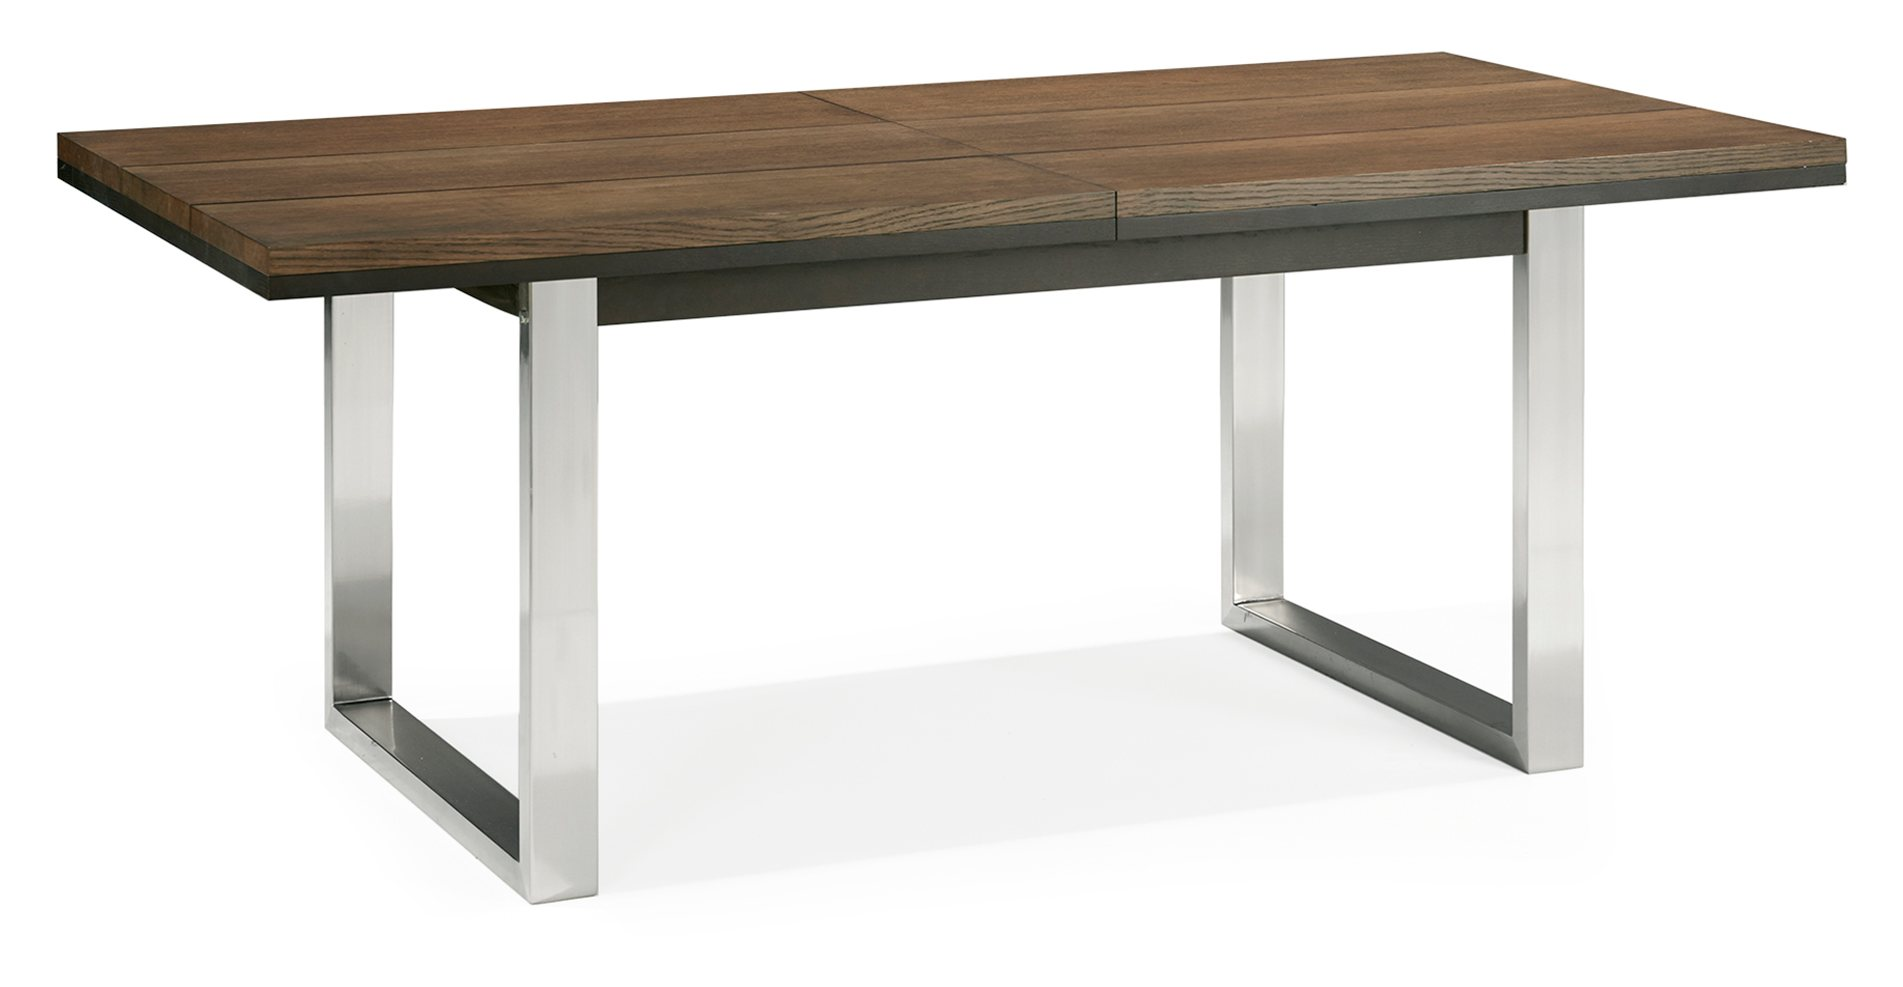 BRINDISI EXTENDING DINING TABLE CLOSED - L 190cm x D95cm x H77cm